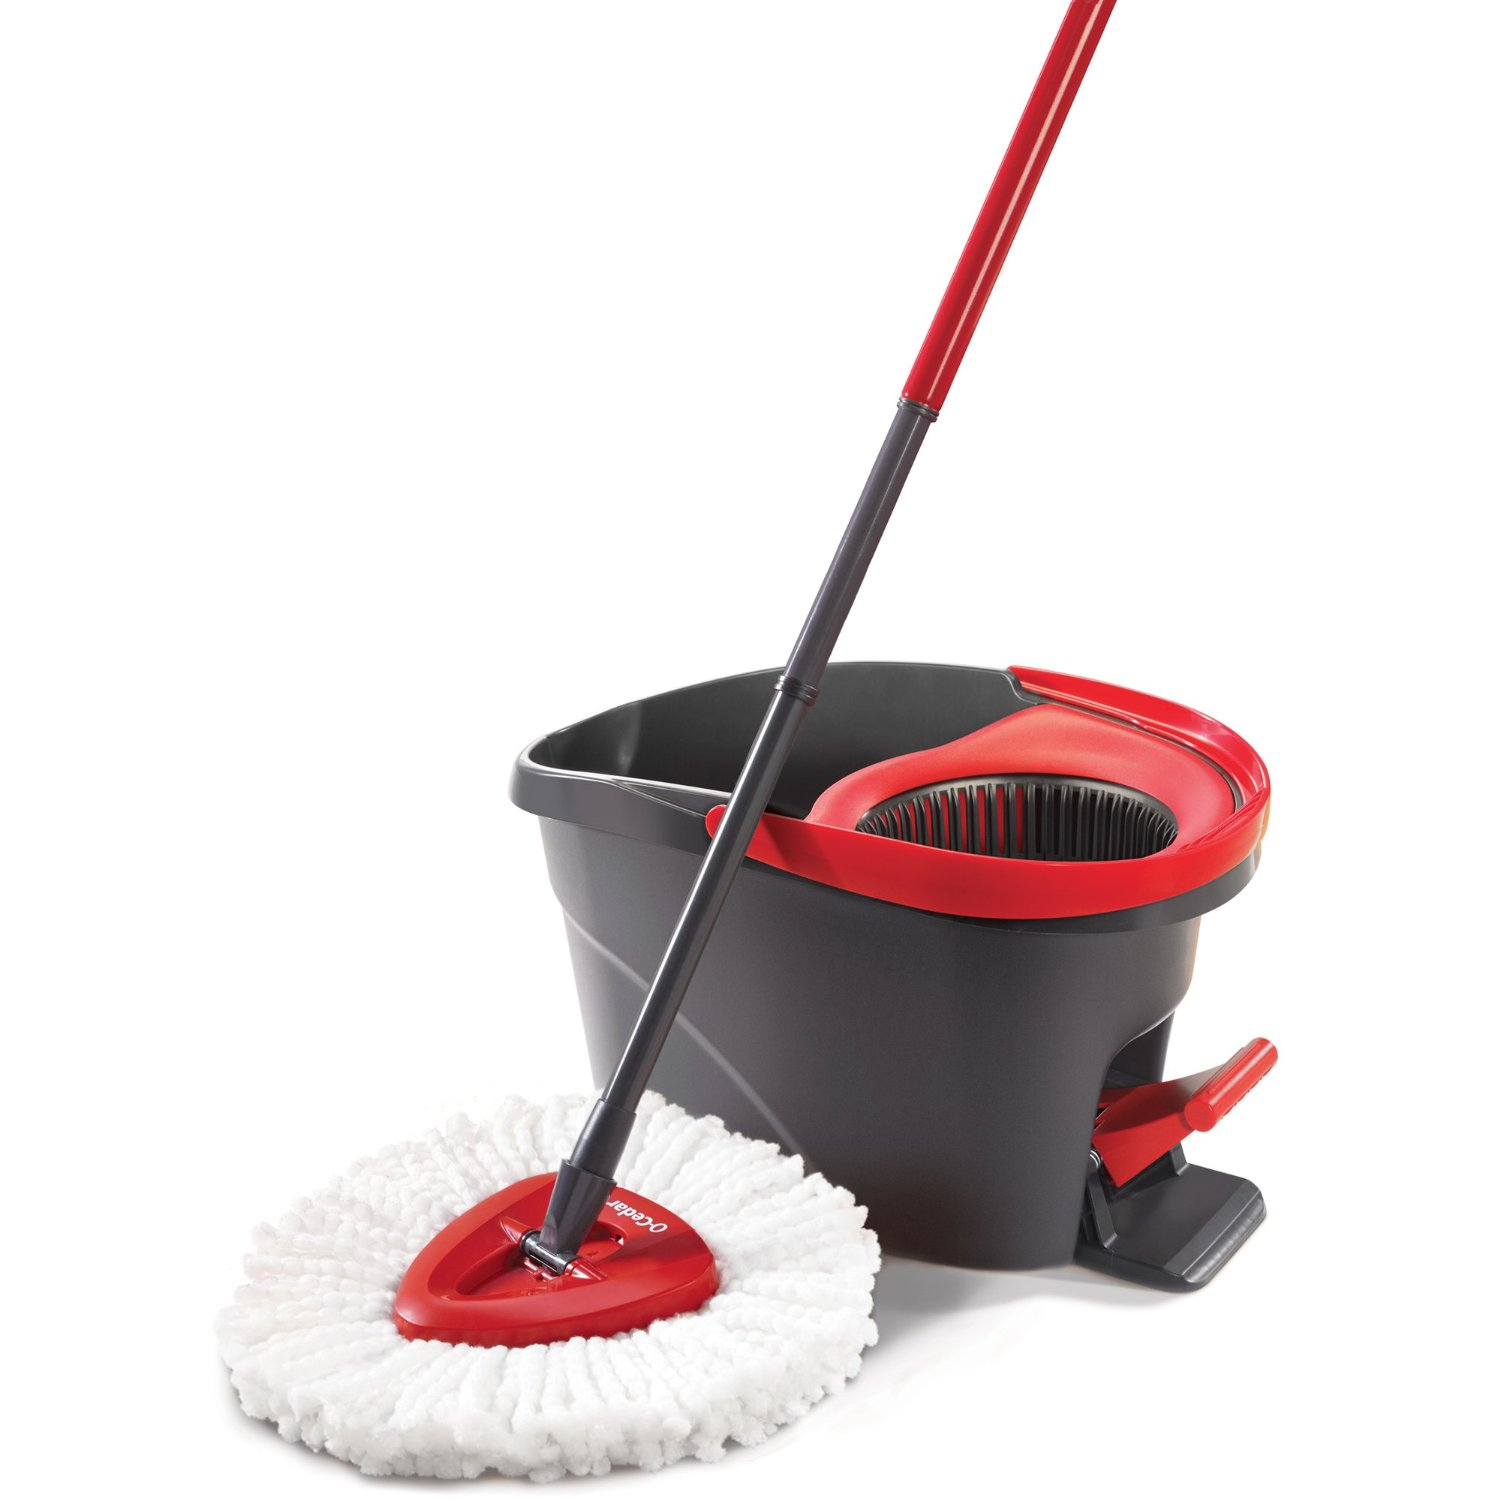 Twist and shout mop review - O Cedar Easywring Spin Mop Bucket System